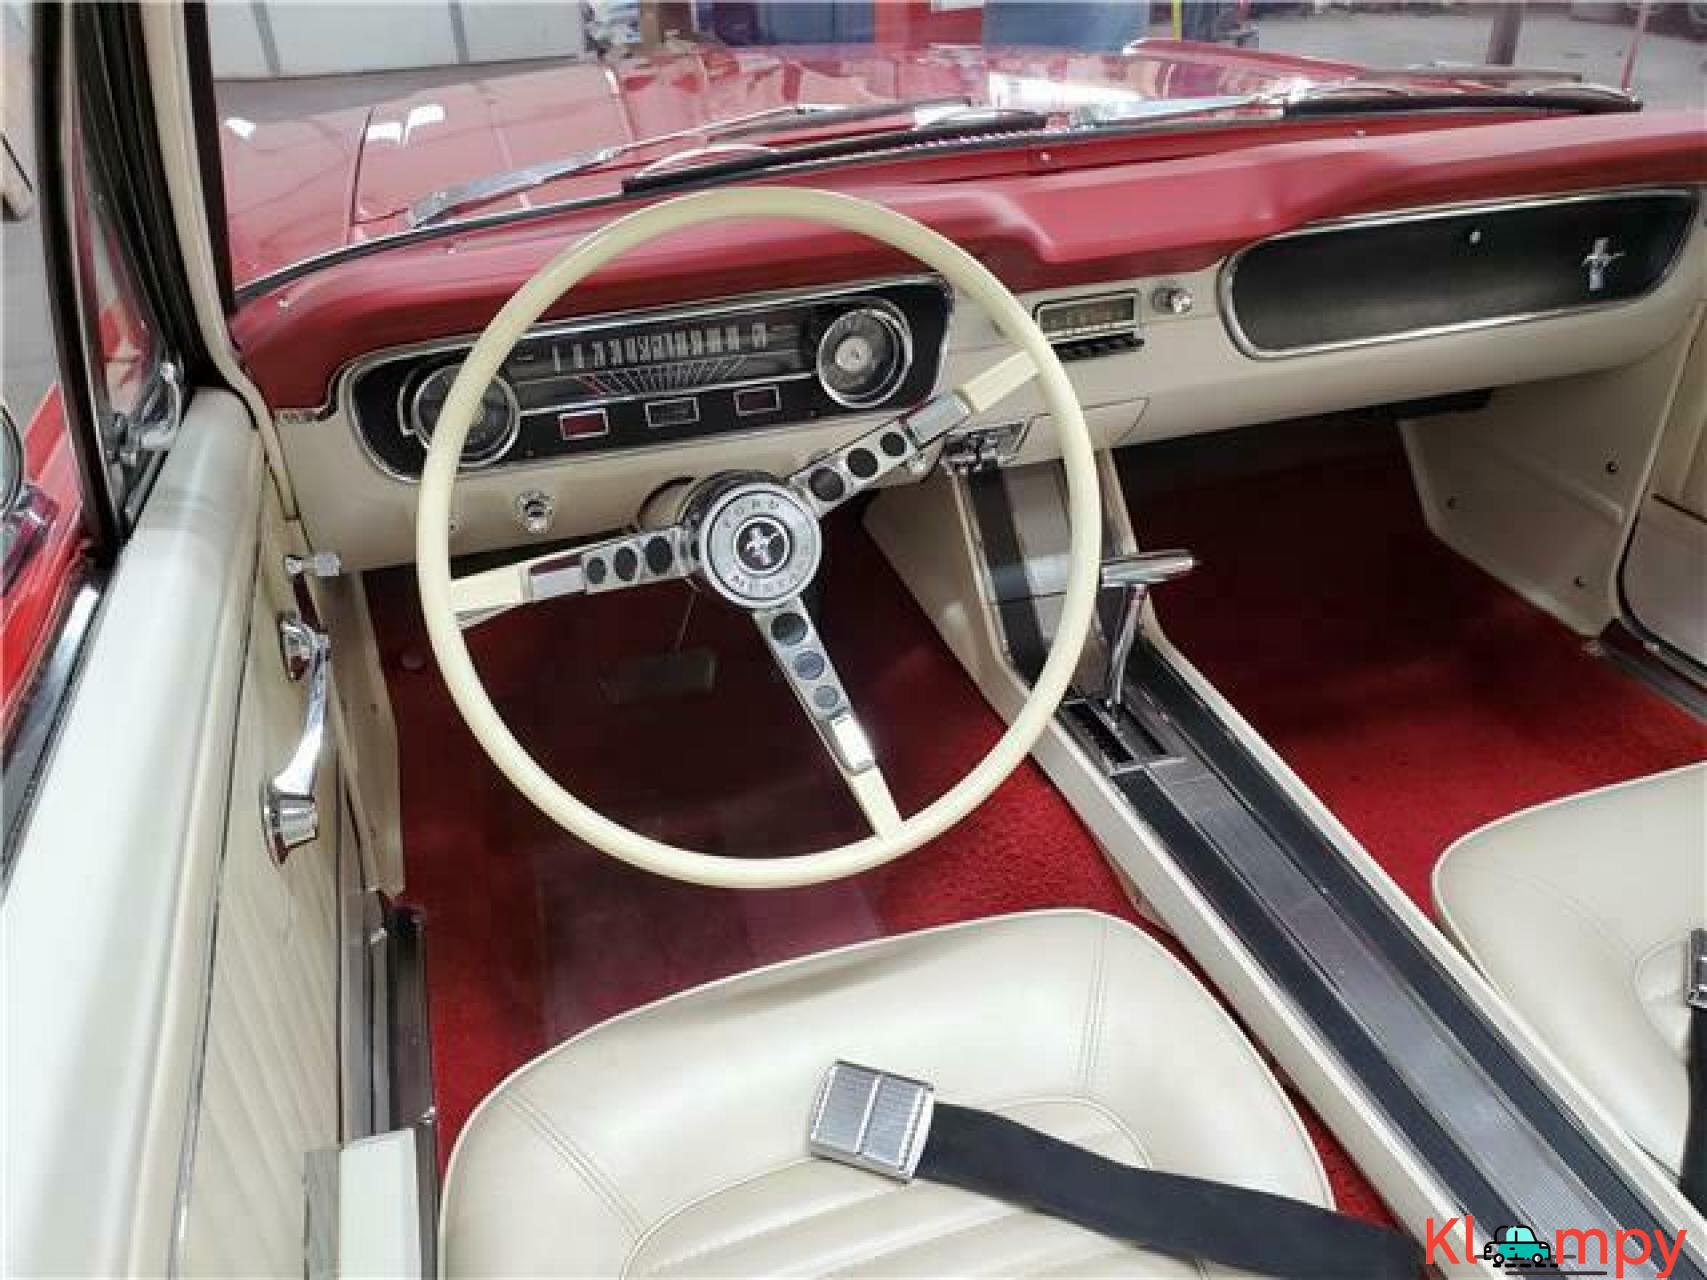 1965 Ford Mustang Rear Wheel Drive - 12/20